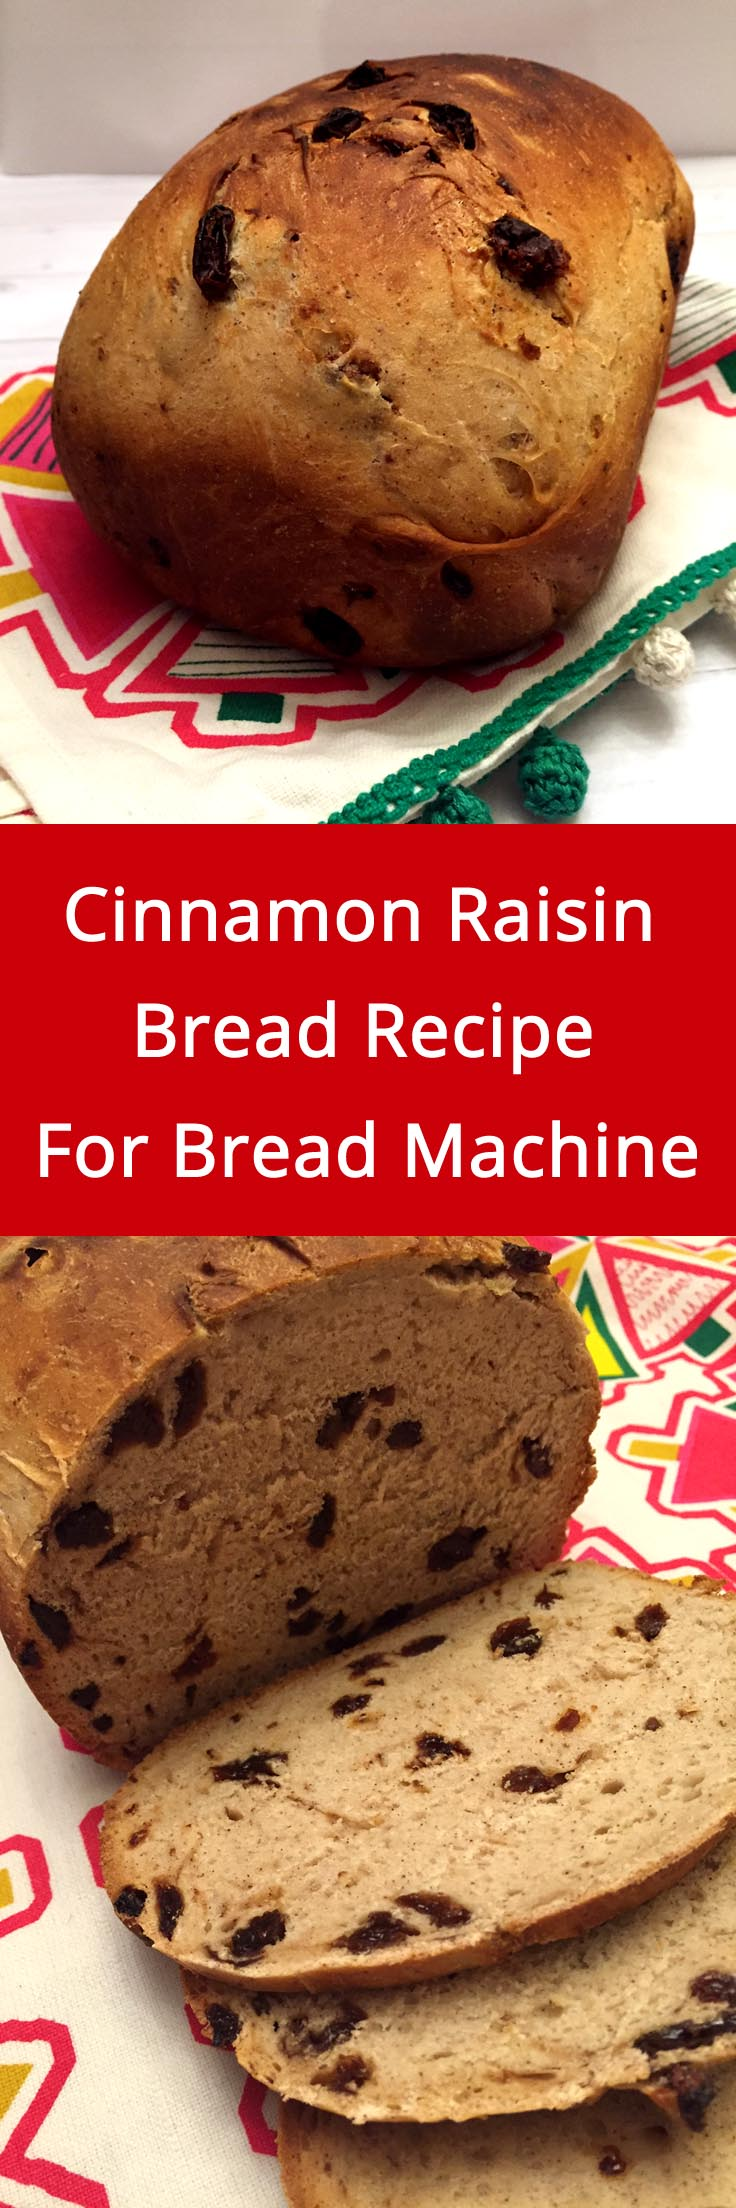 Cinnamon Raisin Bread Recipe For Bread Machine - Melanie Cooks